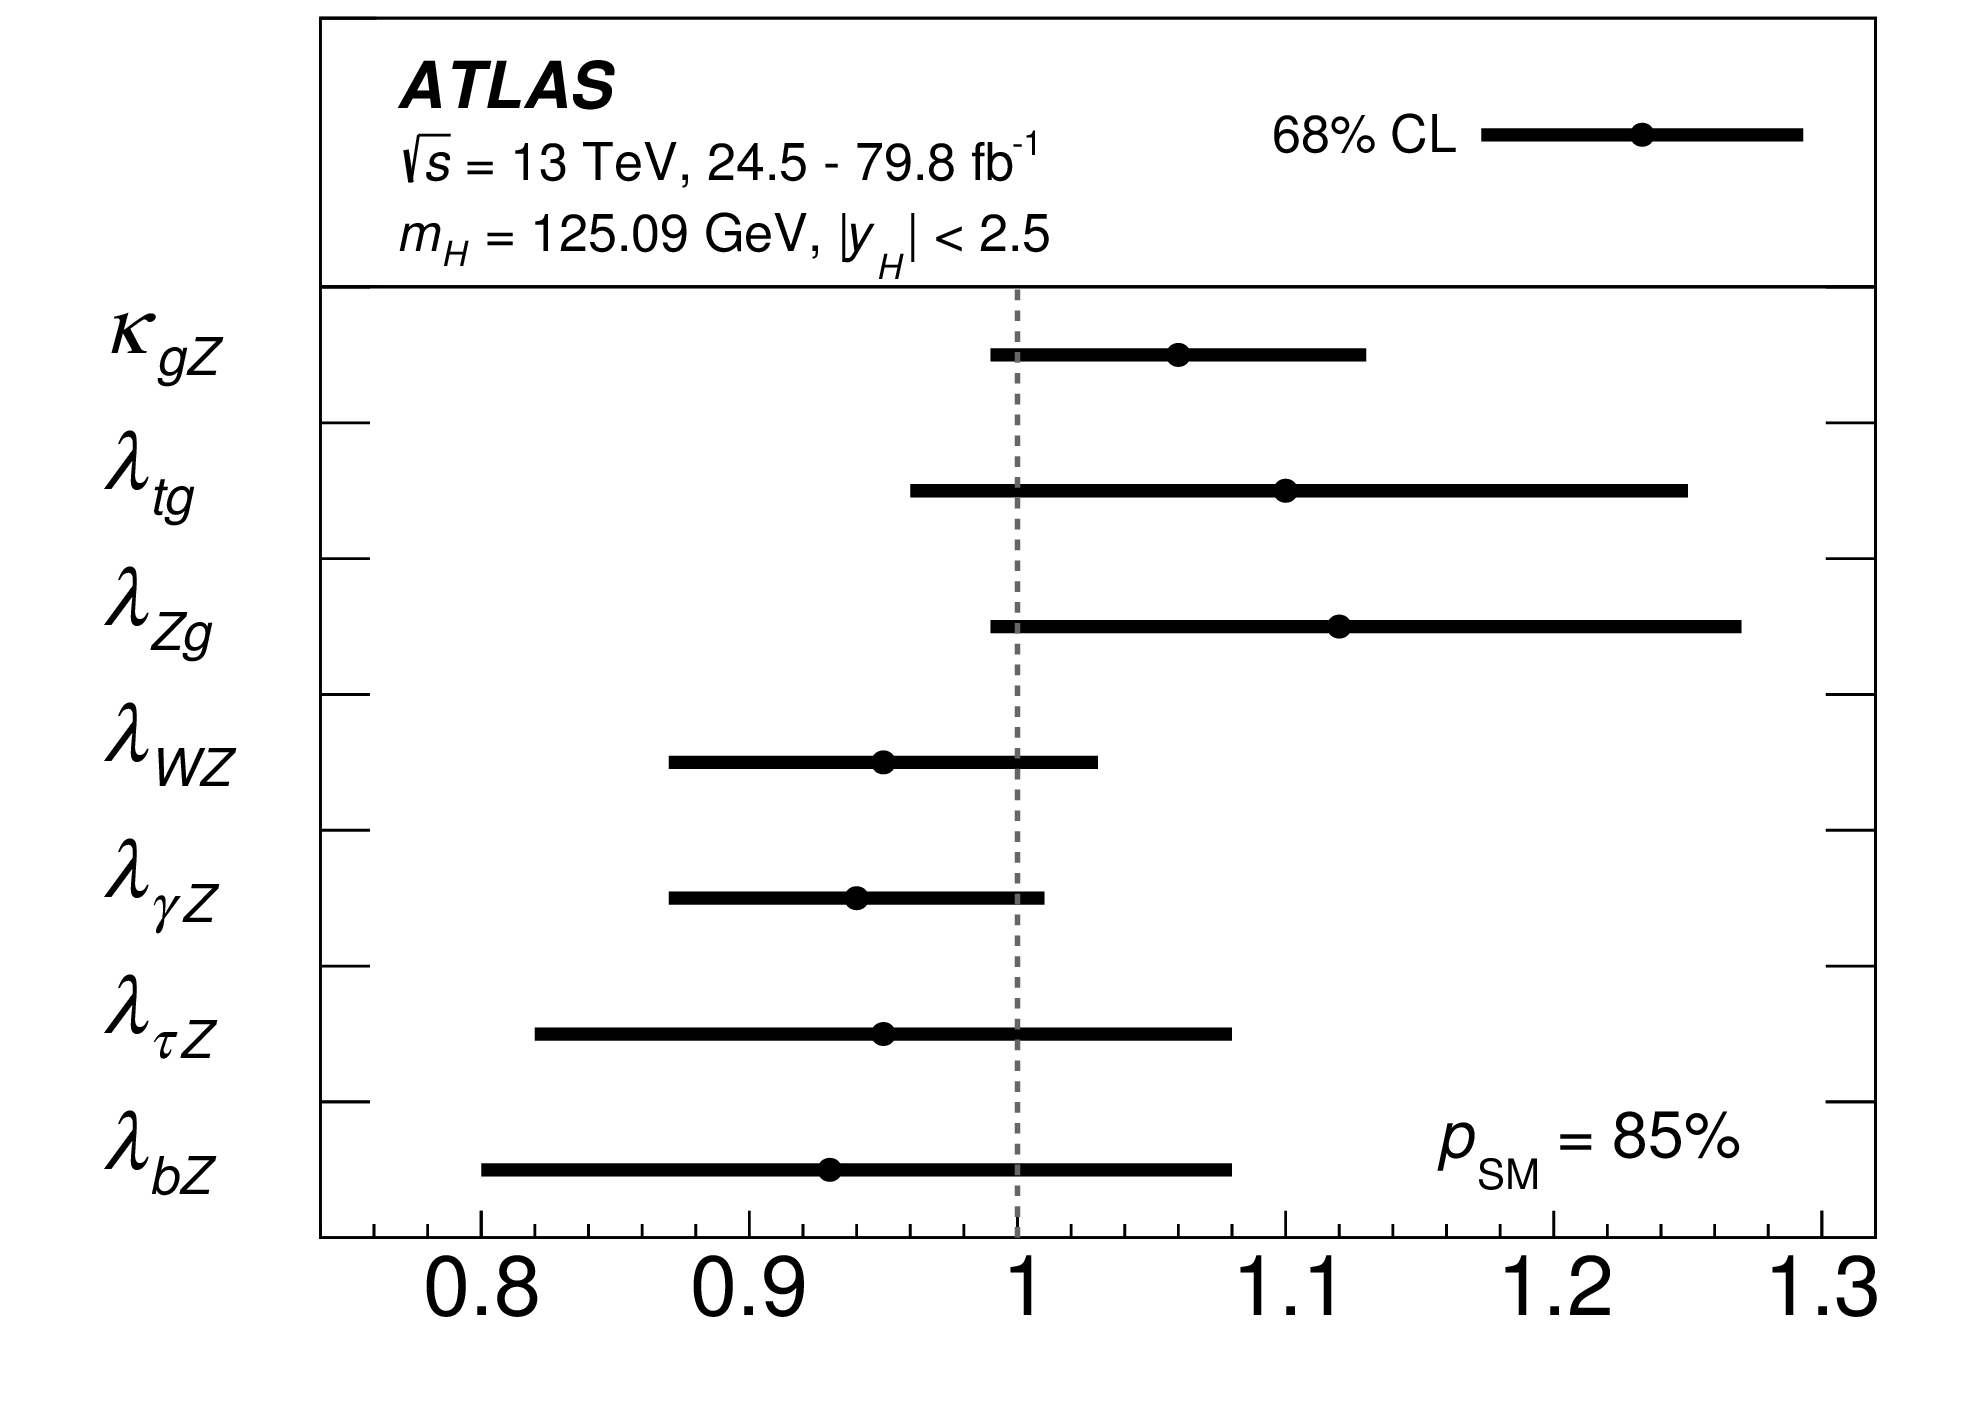 https://atlas.web.cern.ch/Atlas/GROUPS/PHYSICS/CombinedSummaryPlots/HIGGS/ATLAS_HIGGS4300_kappa_ratio_Summary/ATLAS_HIGGS4300_kappa_ratio_Summary.png